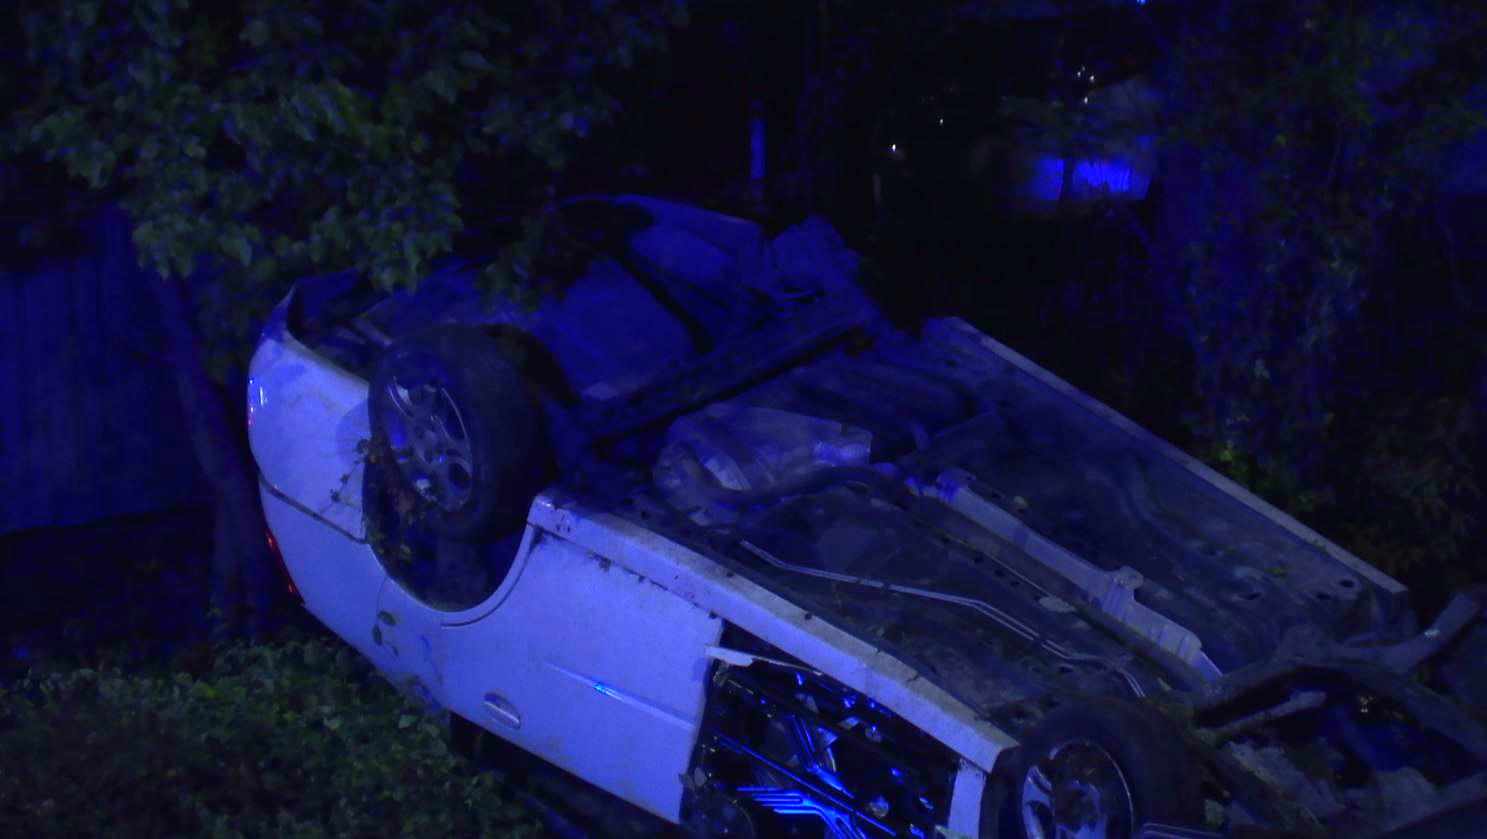 Alcohol believed to be factor in fatal rollover crash in